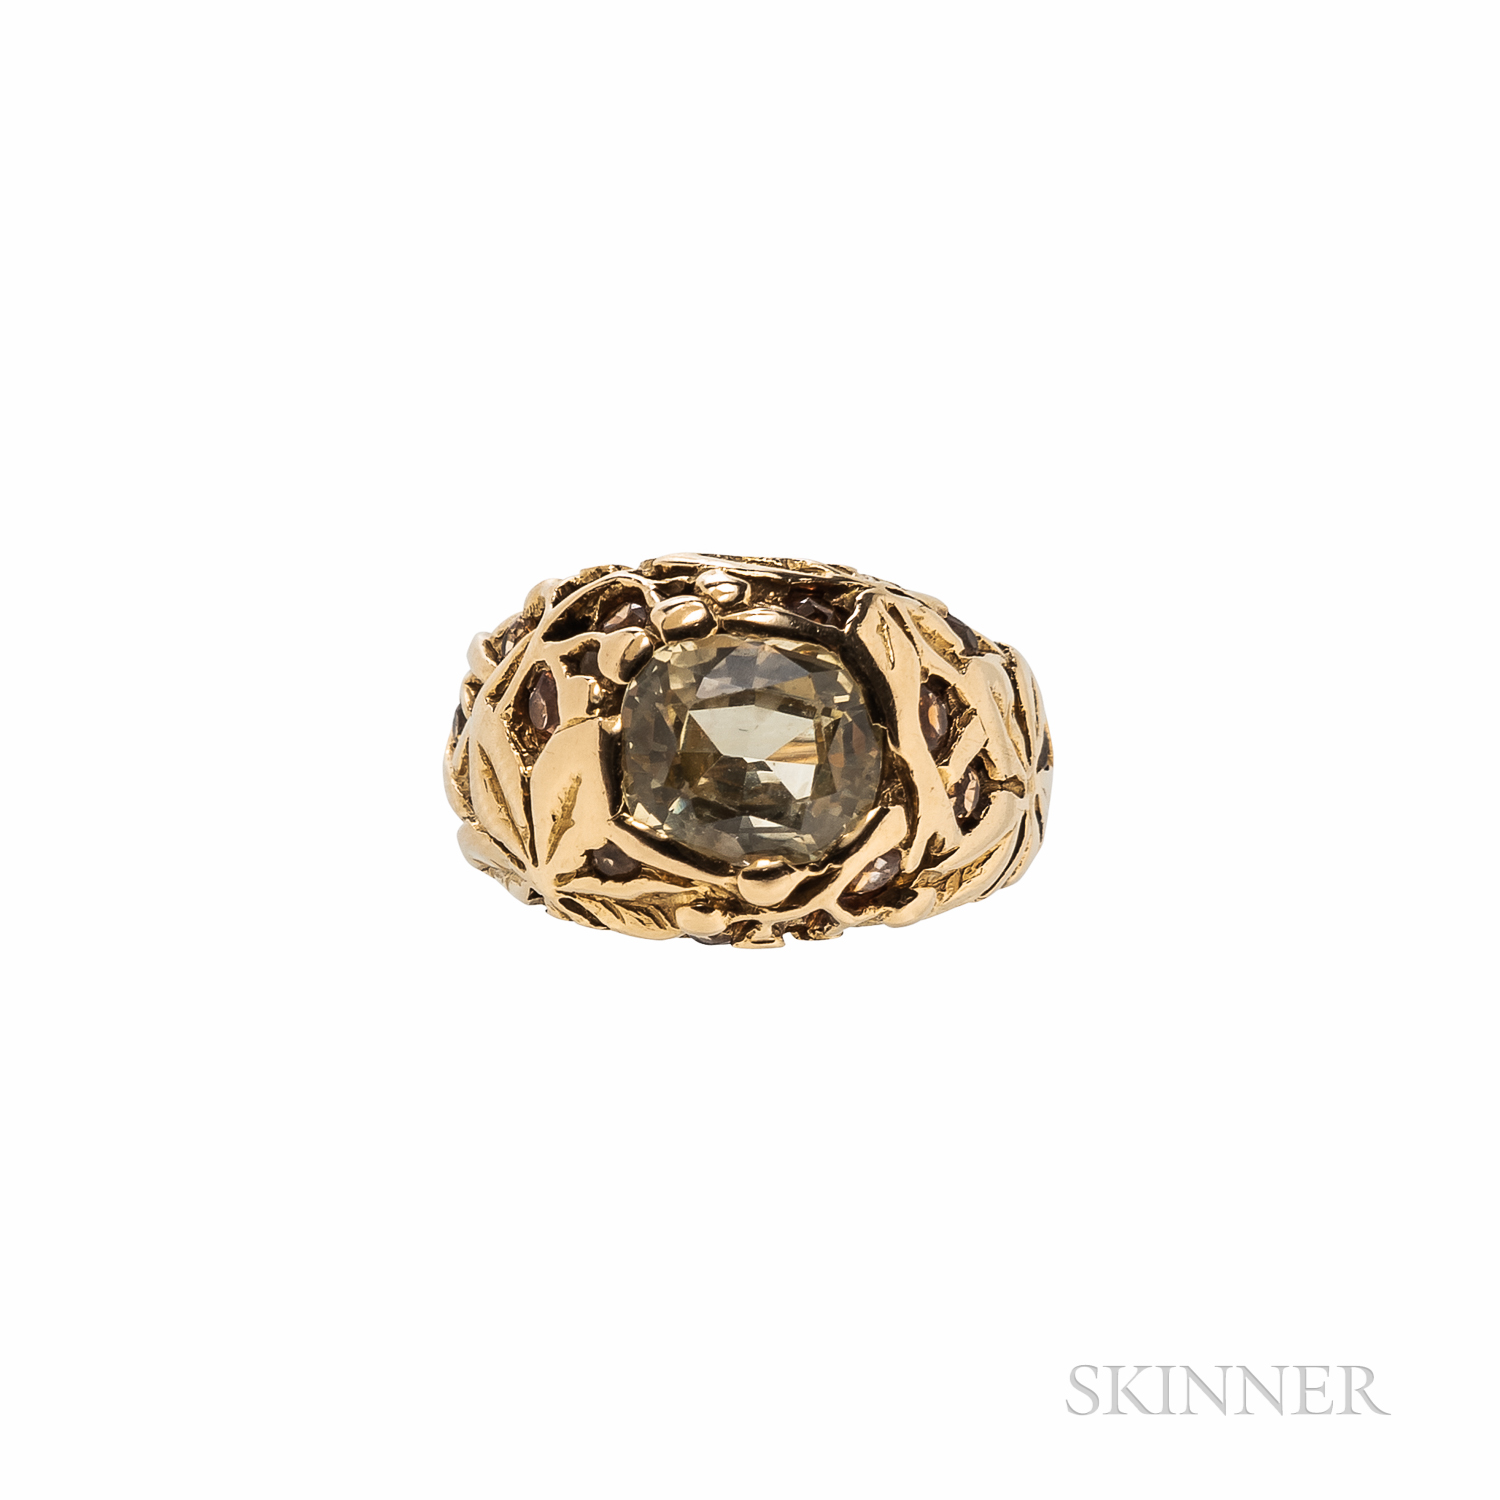 Tiffany & Co. Gold, Yellow Sapphire, and Citrine Ring